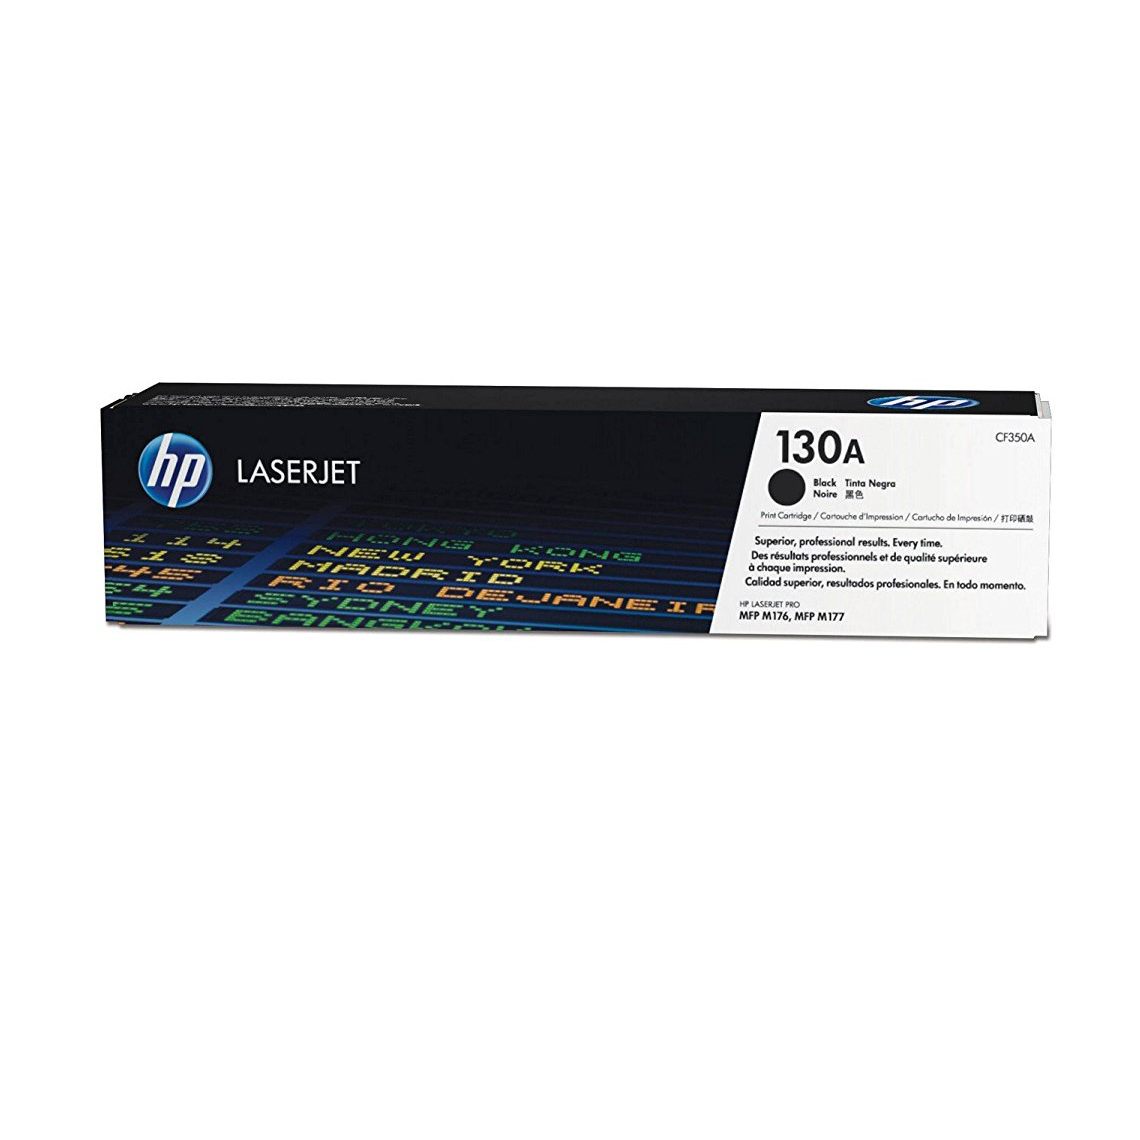 HP 130A LaserJet Toner Cartridge - Black